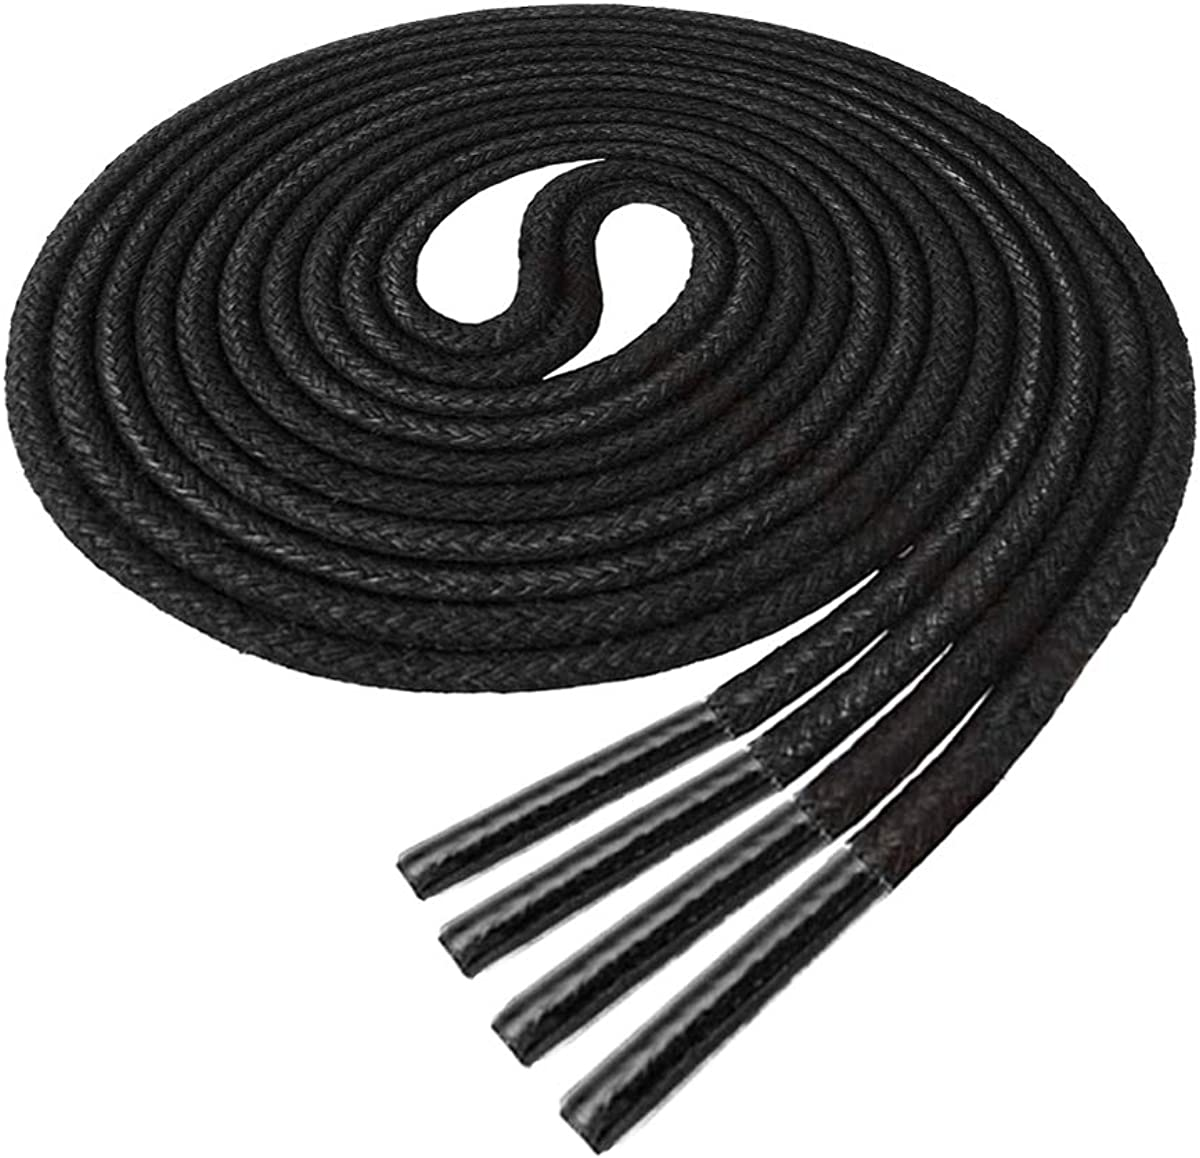 Waxed Thin Round Dress Shoelaces [2 Pairs] [5 Color][6 Size] for Oxford Dress Shoes Laces : Clothing, Shoes & Jewelry